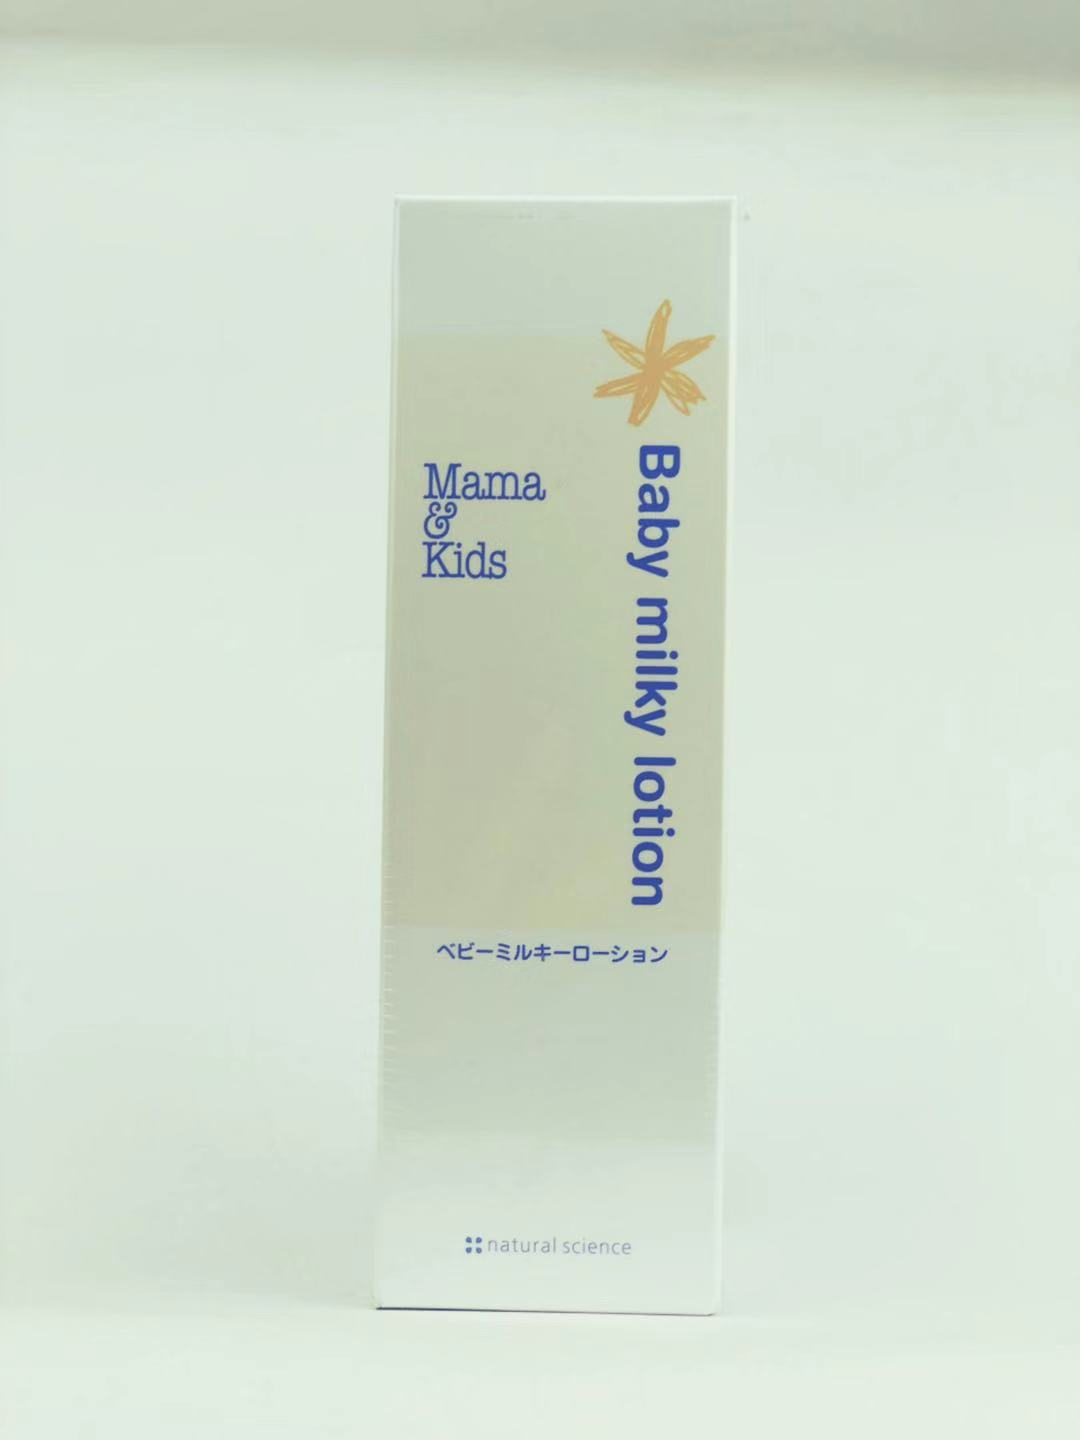 Batch of Mamy Poko mamakids childrens body lotion 150ml